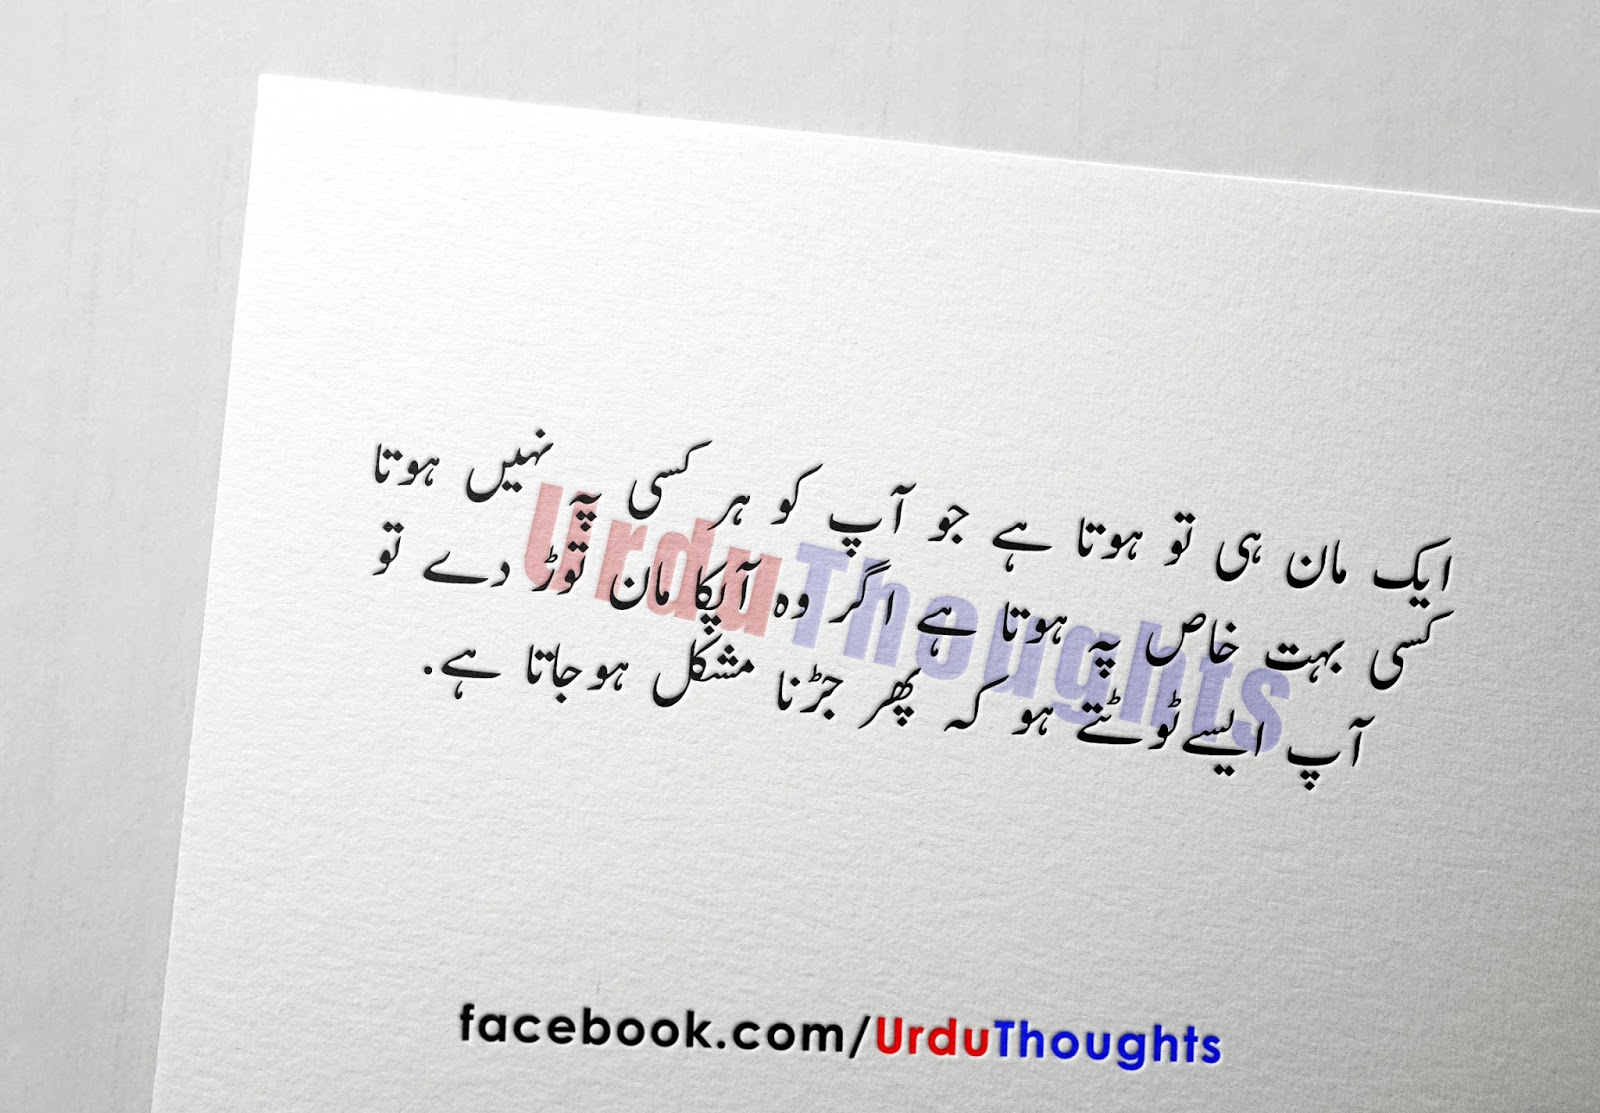 Quotes In Urdu Gorgeous Best Urdu Quotes With Images  Famous Urdu Quotes  Urdu Thoughts